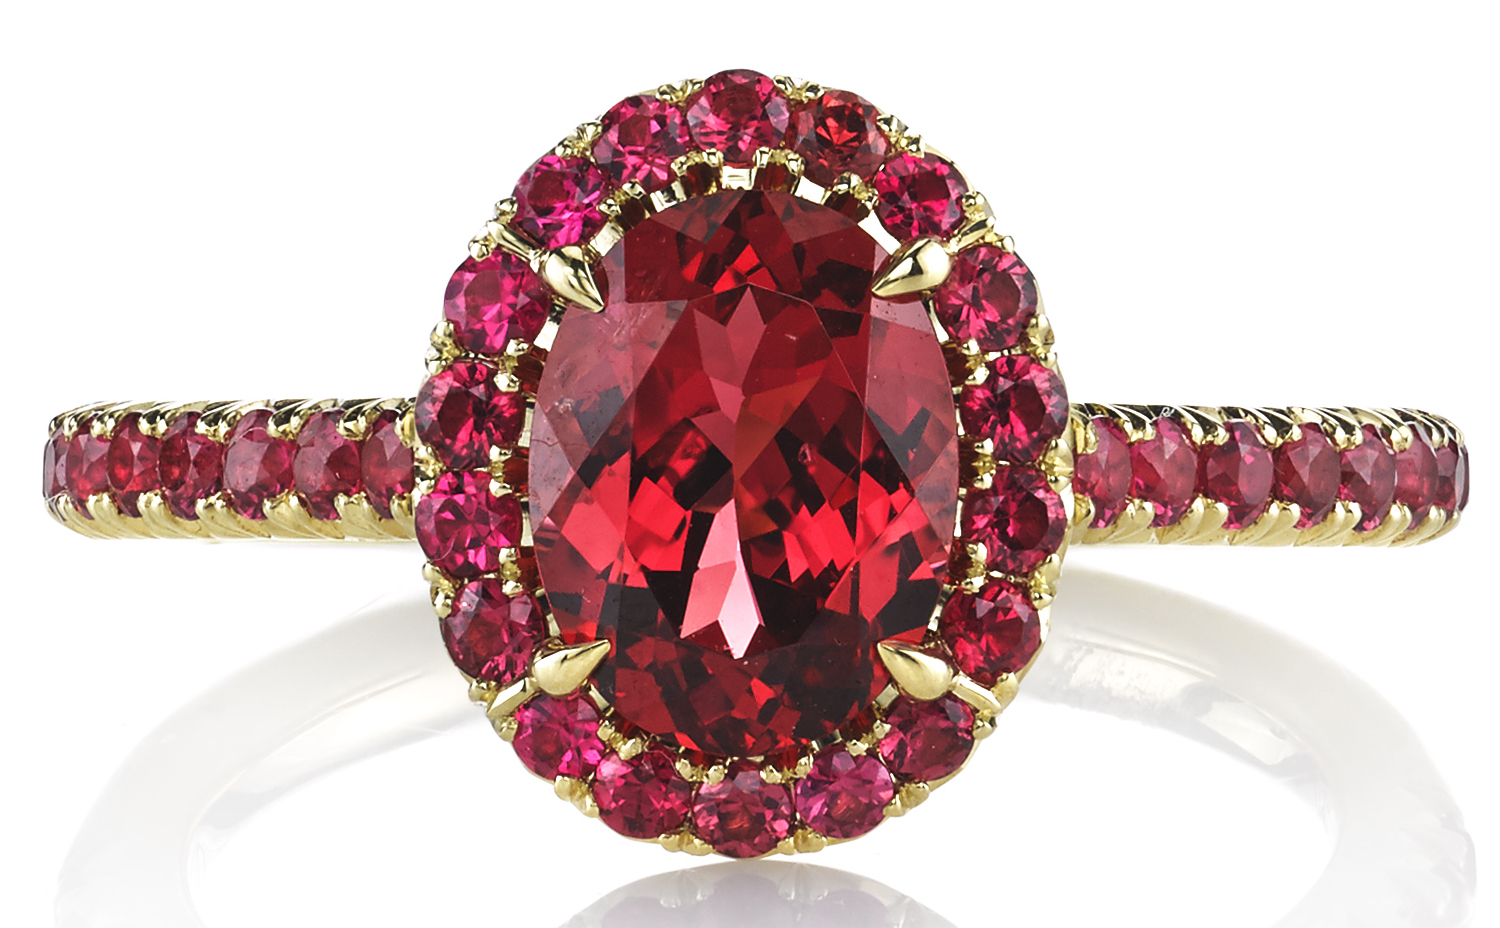 Omi Privé red spinel Doré ring | JCK On Your Market